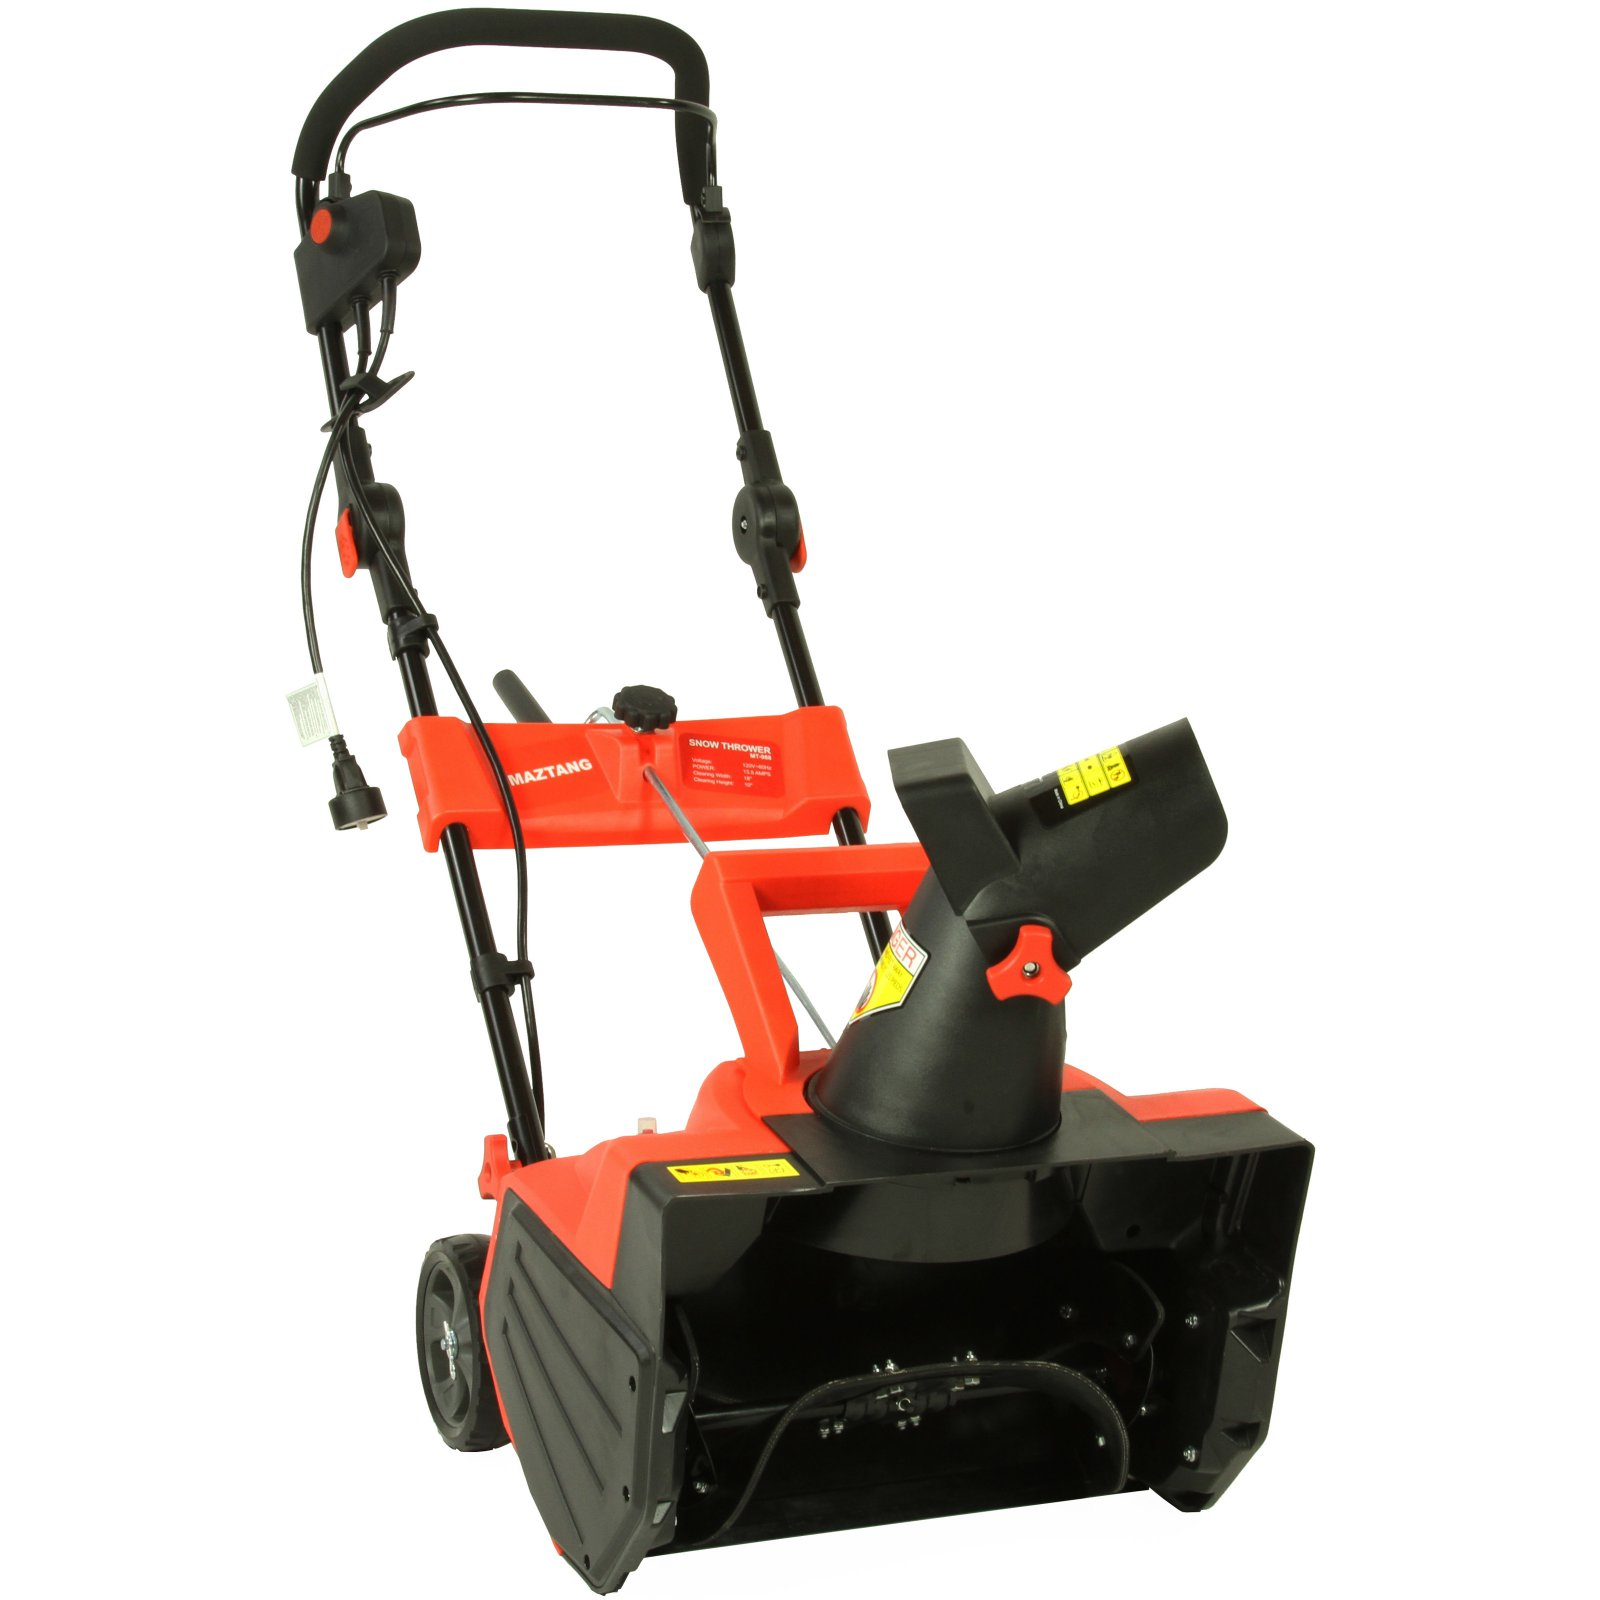 Maztang MT-988 18-Inch 13-Amp Electric Snow Blower